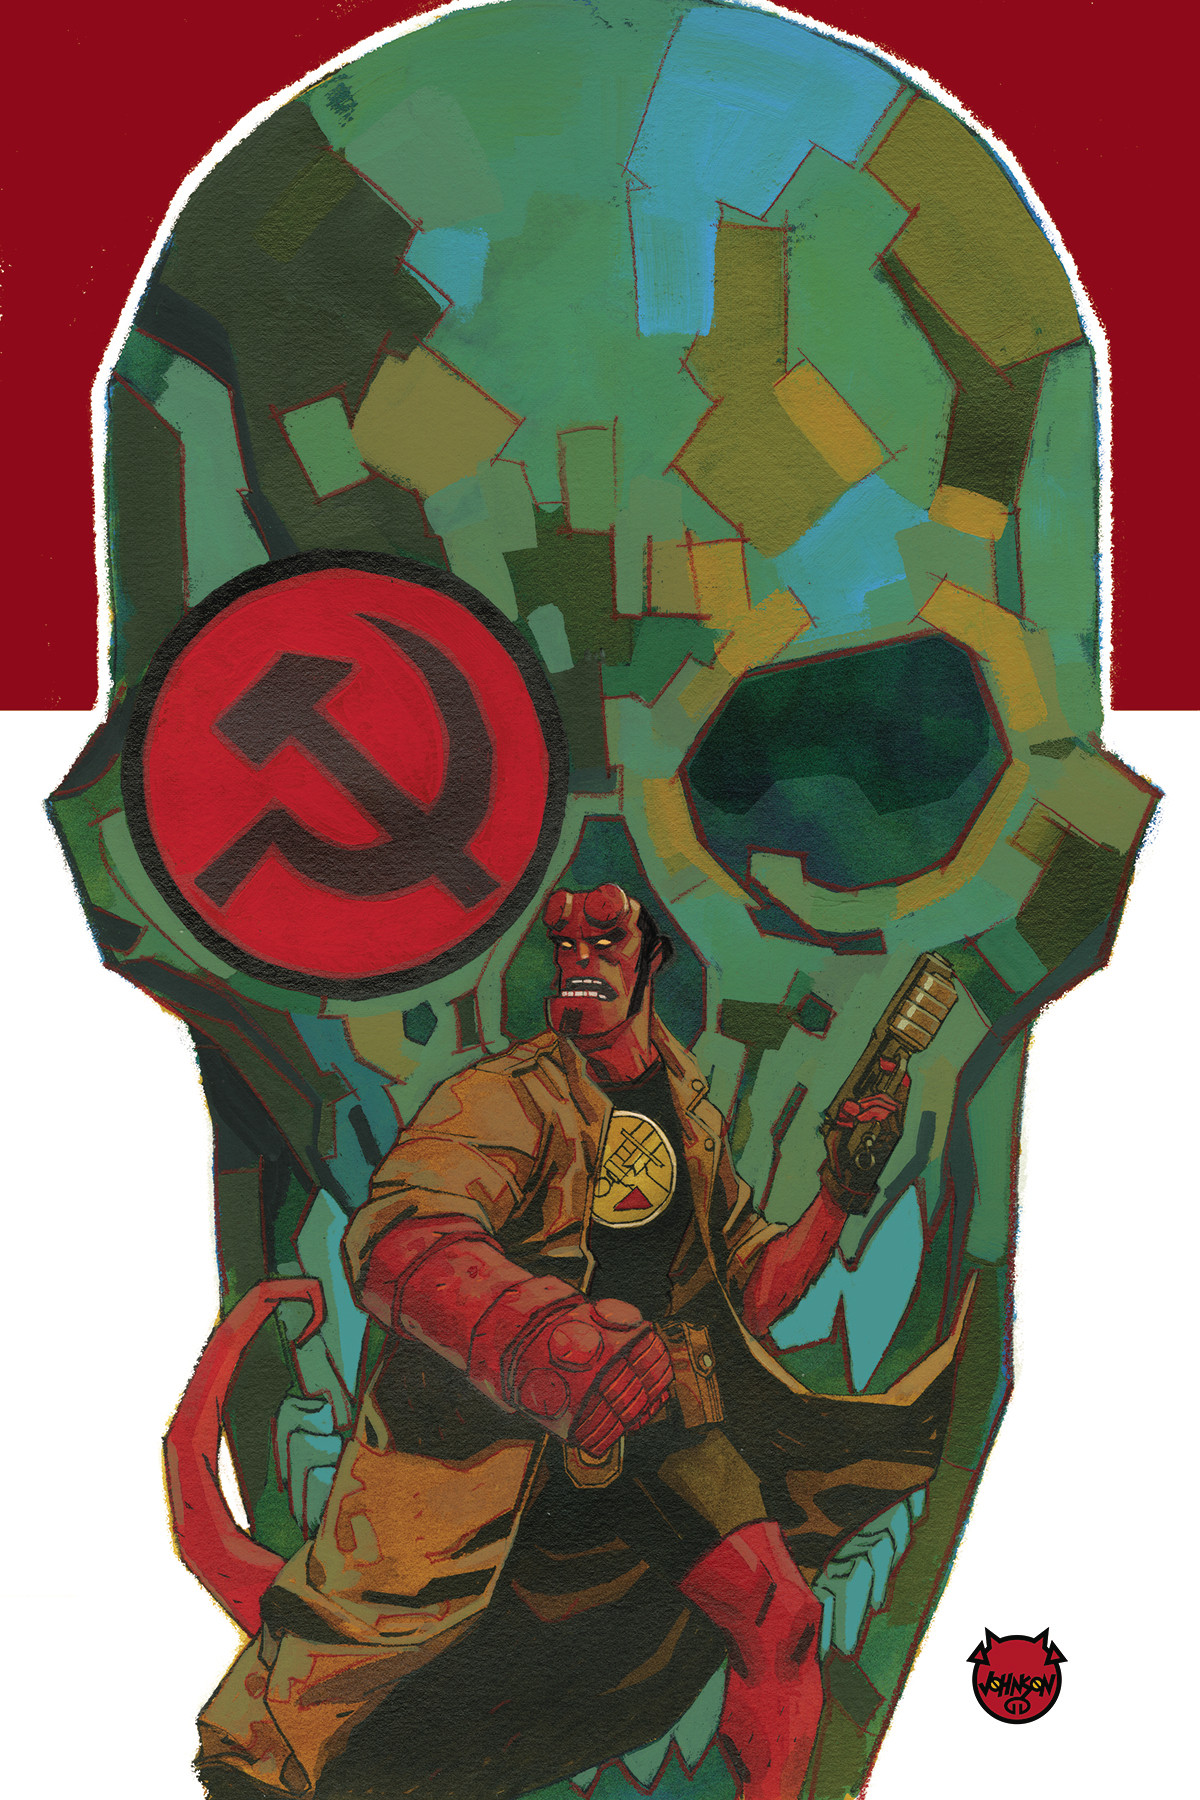 HELLBOY AND BPRD 1956 #1 (OF 5)